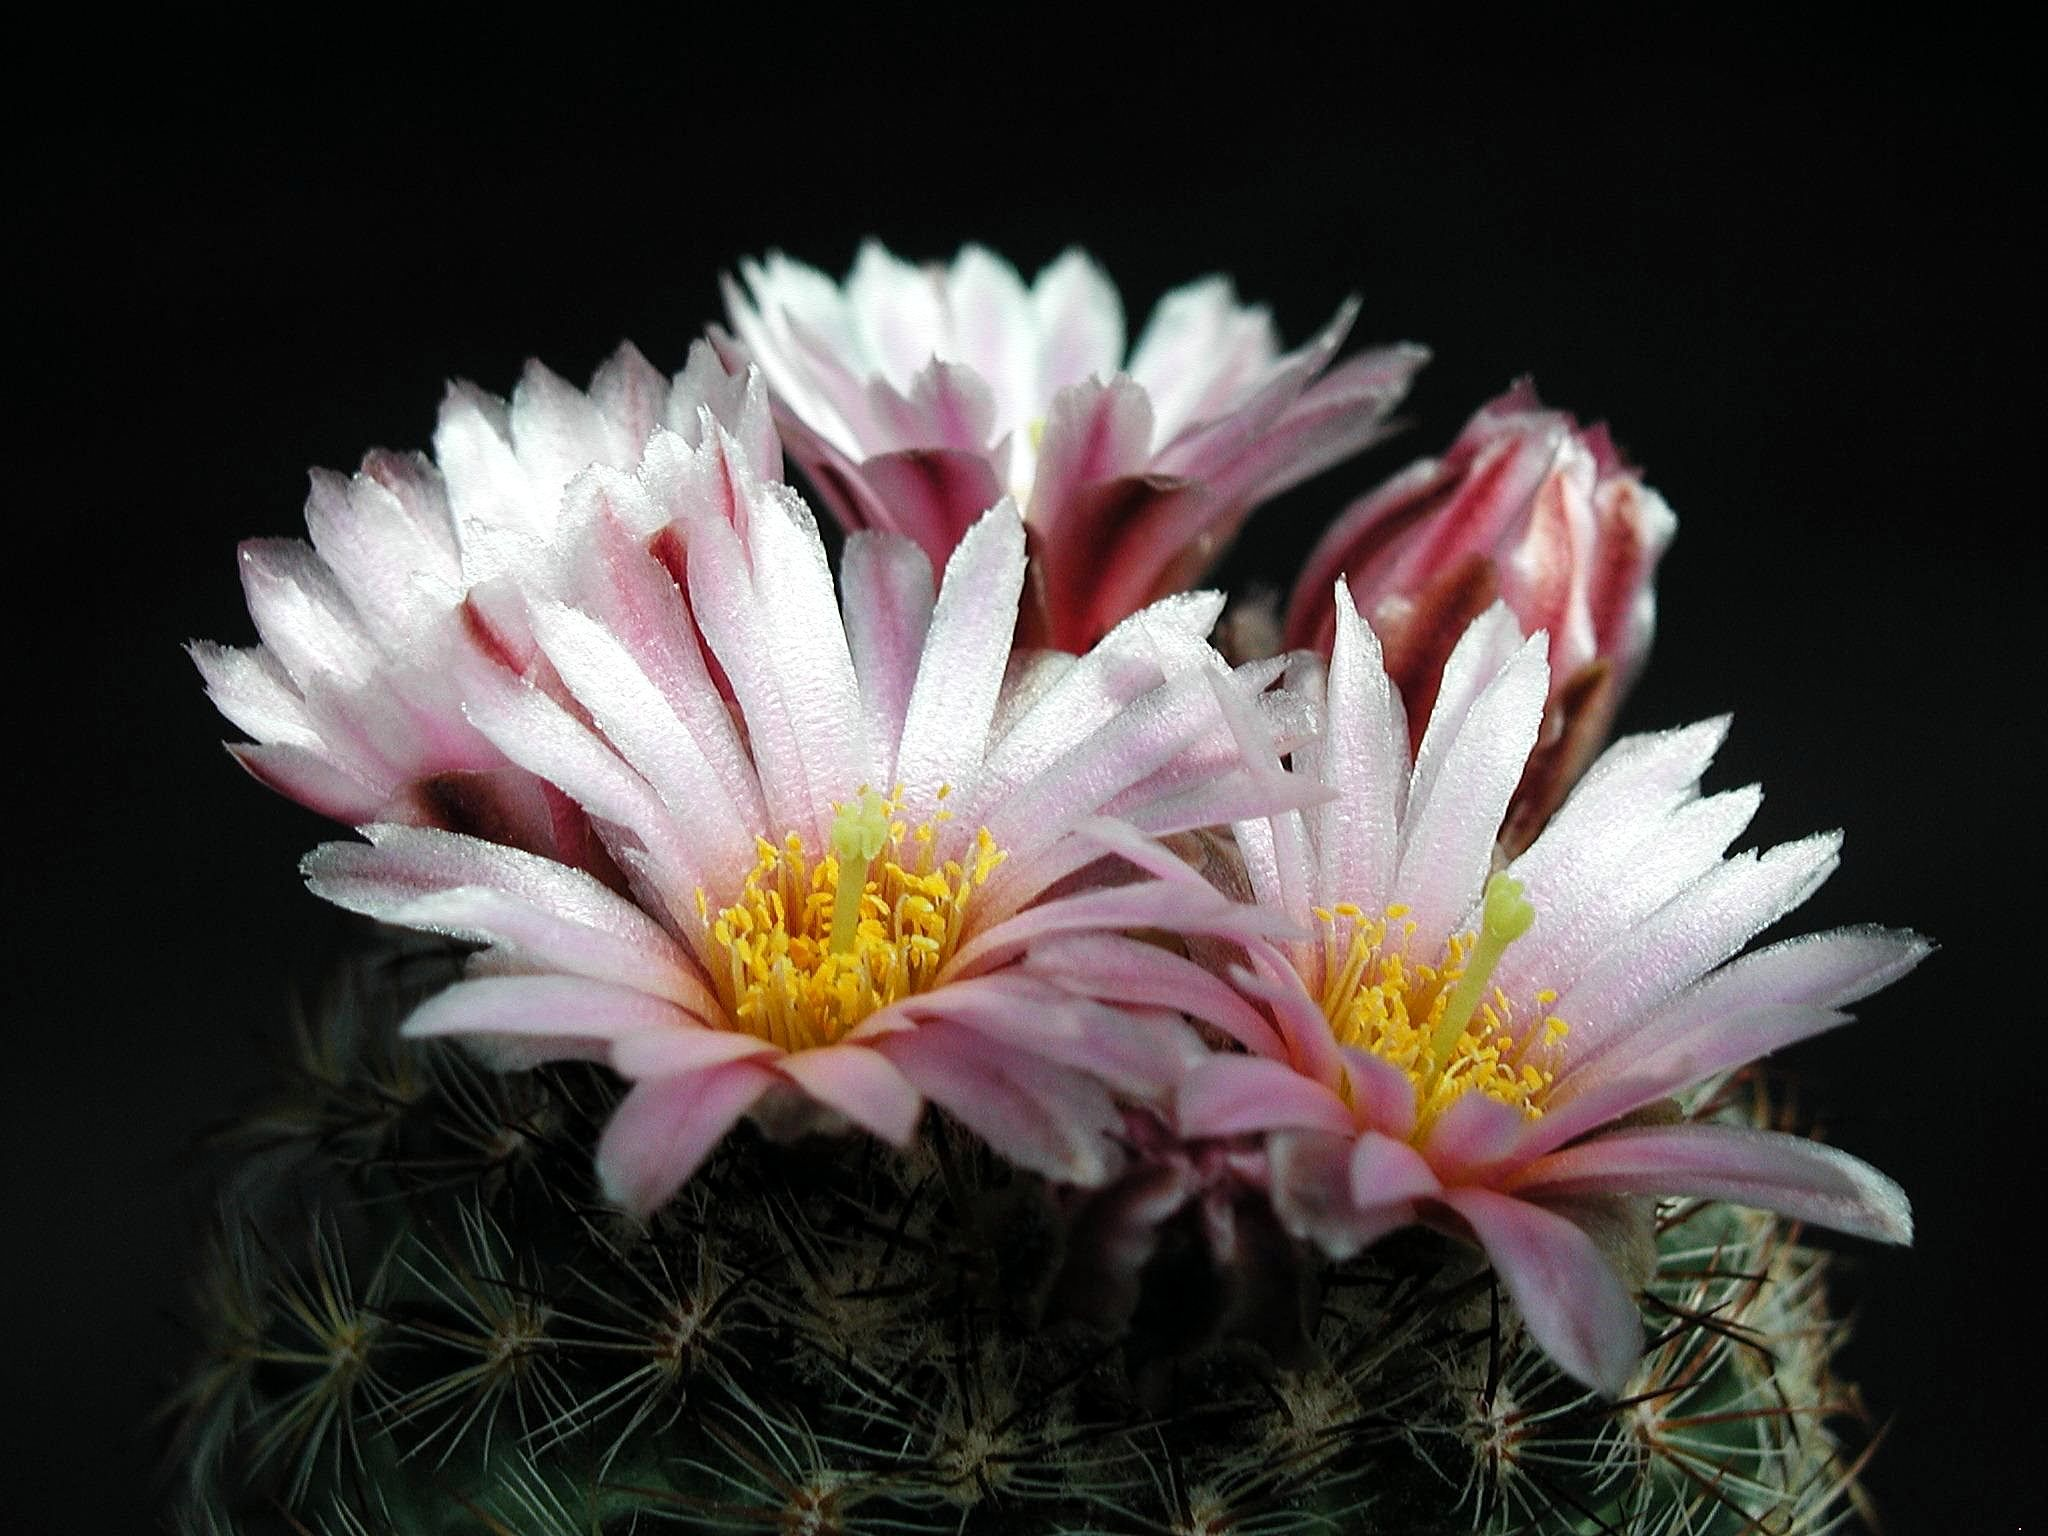 Free picture light pink cactus flower light pink cactus flower mightylinksfo Image collections